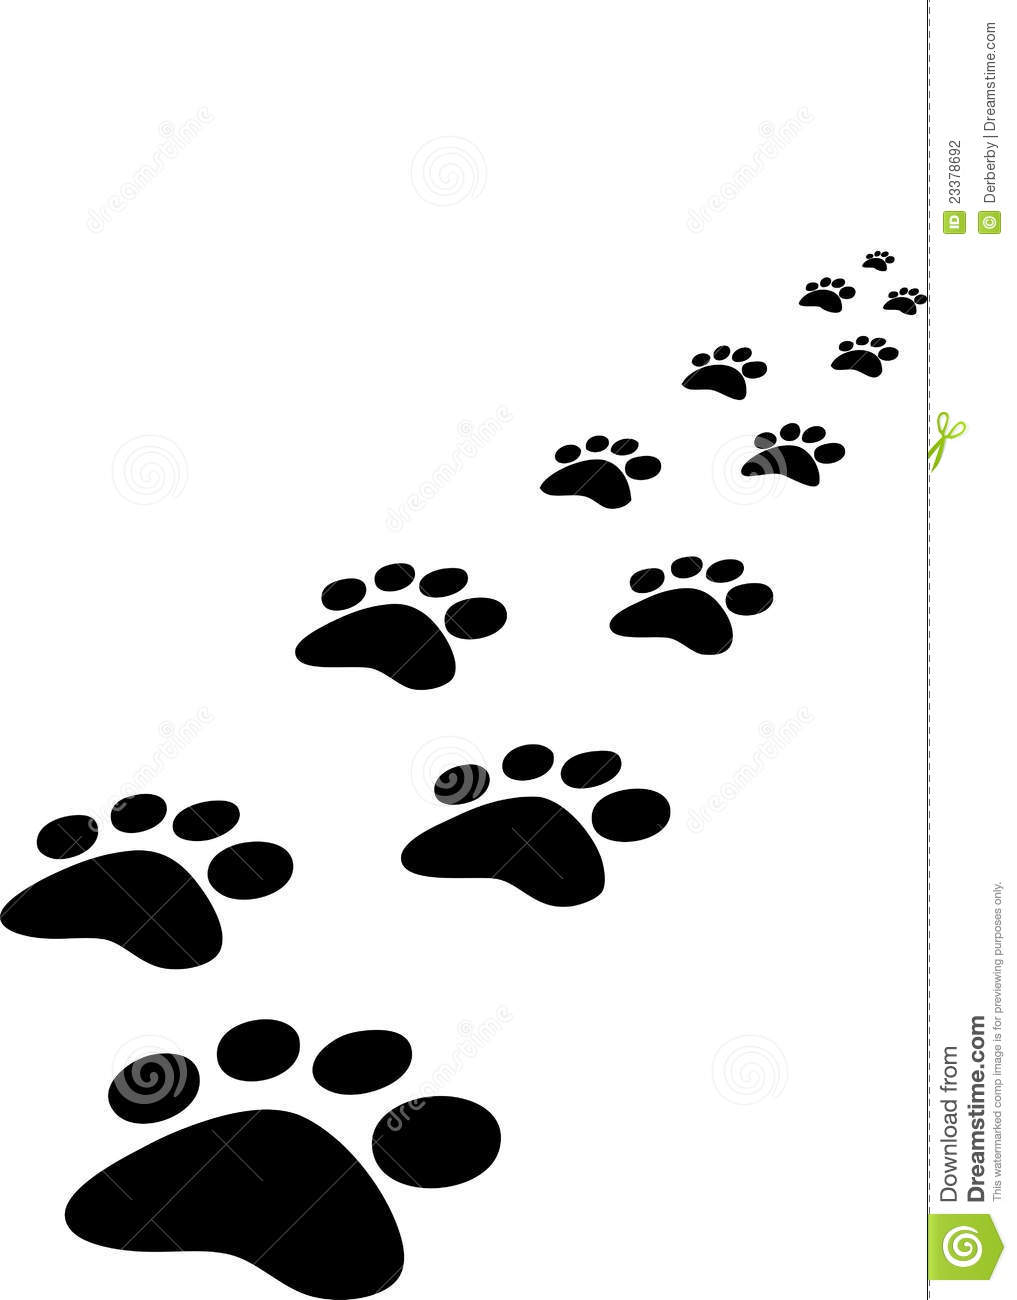 traceable dog pictures trace of dogs stock photography  image 23378692 pictures traceable dog